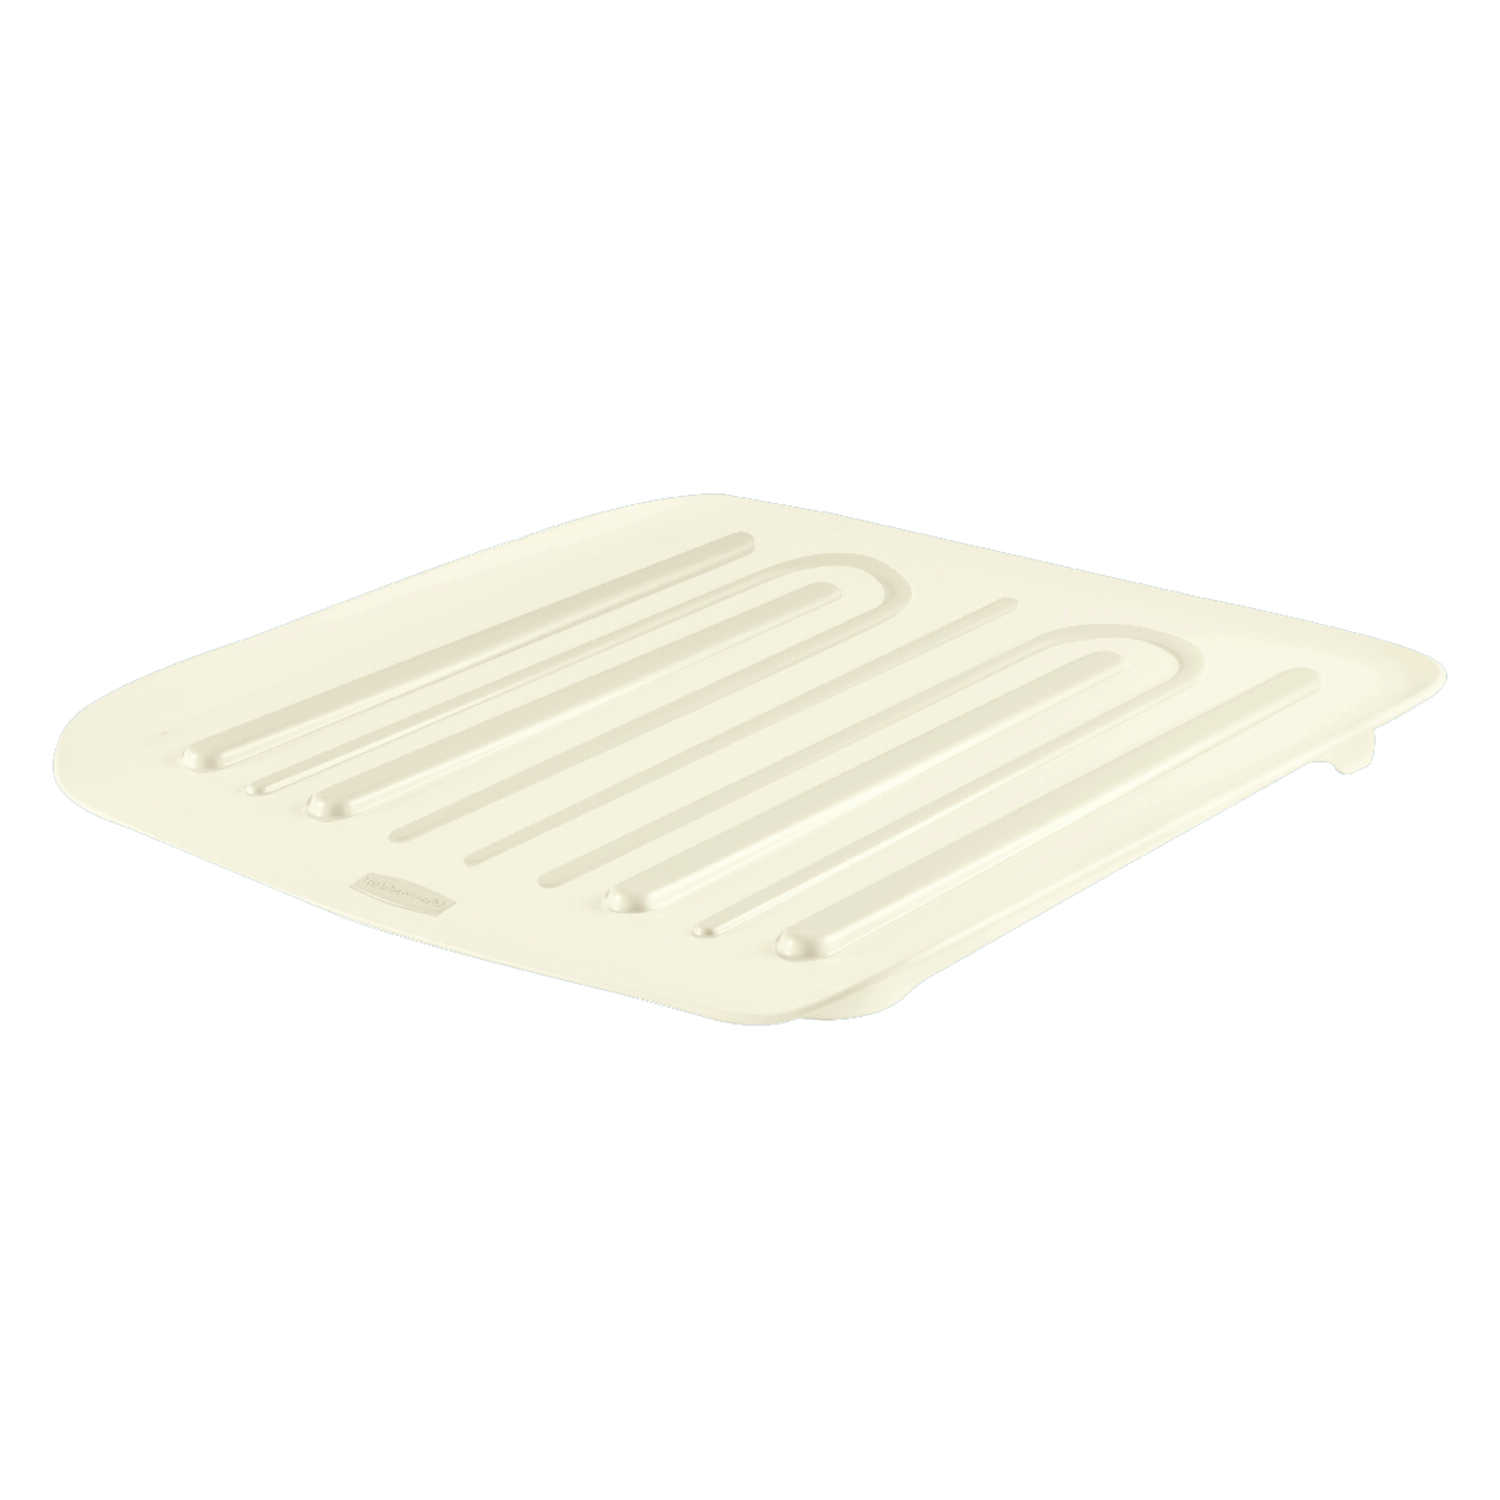 Rubbermaid  1.3 in. H x 15.3 in. W x 14.3 in. L Plastic  Dish Drainer  Bisque